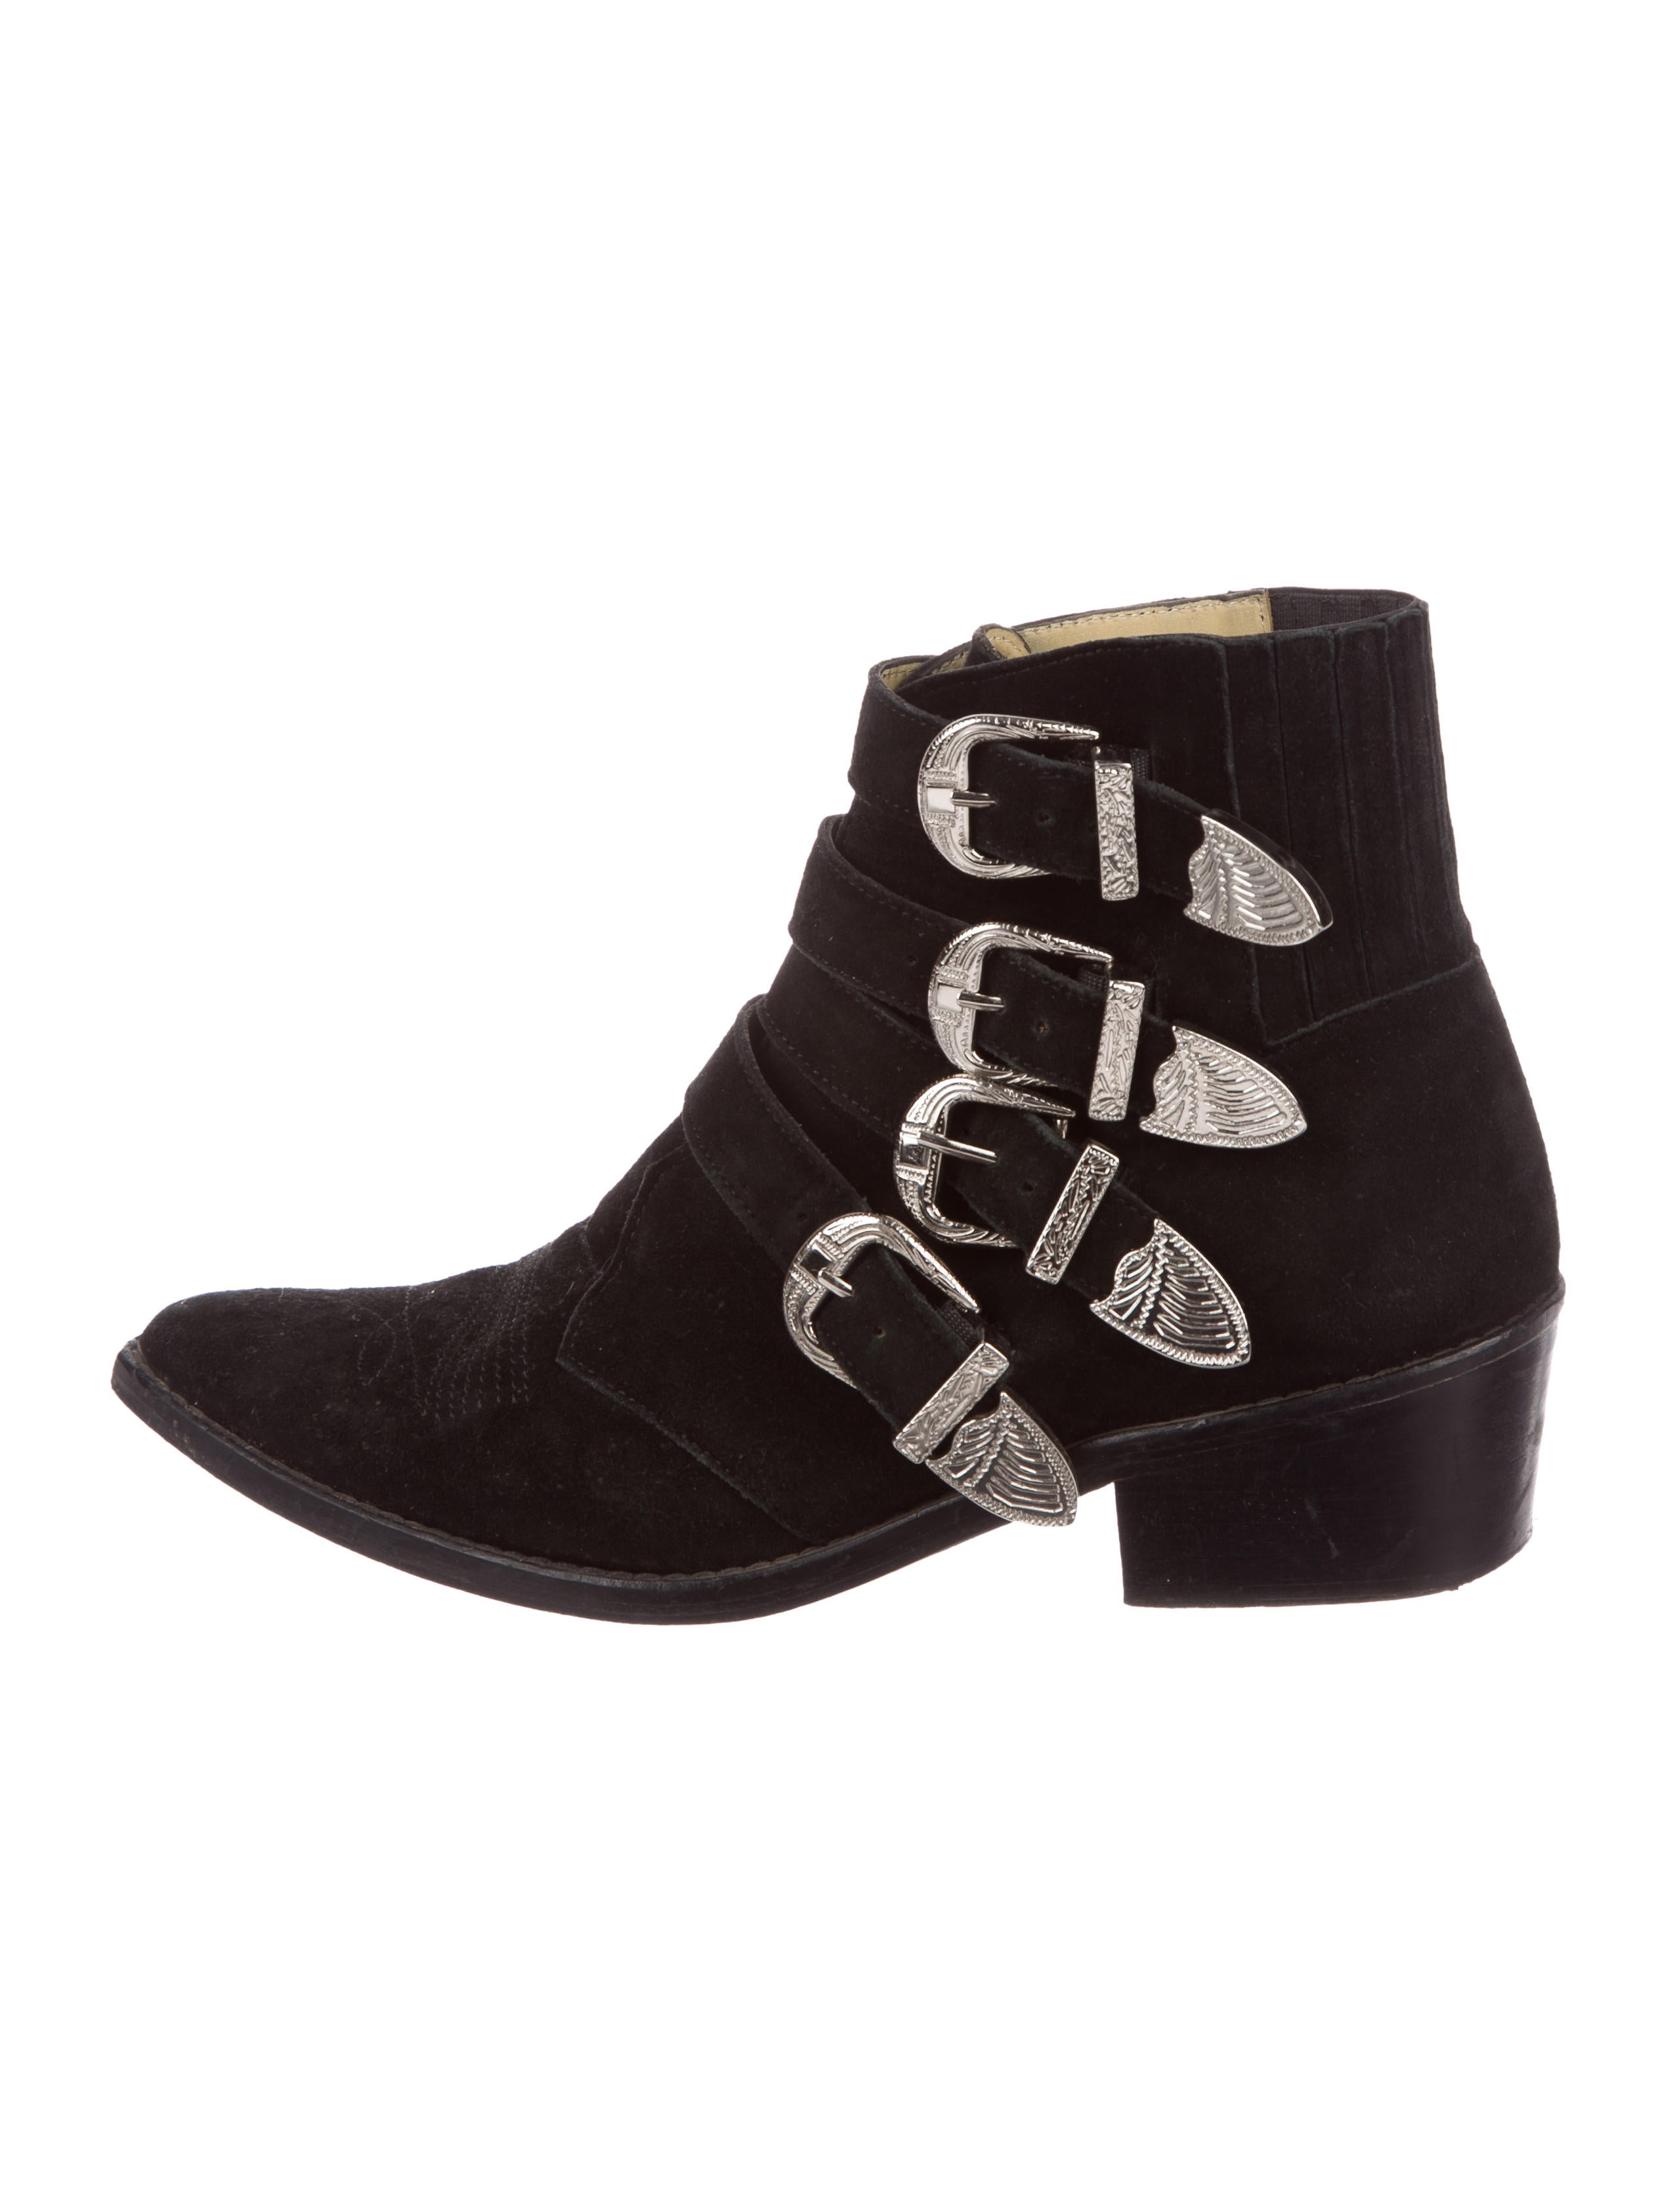 Toga Pulla Suede Multistrap Booties genuine cheap price discount perfect discount geniue stockist q4b6ZS